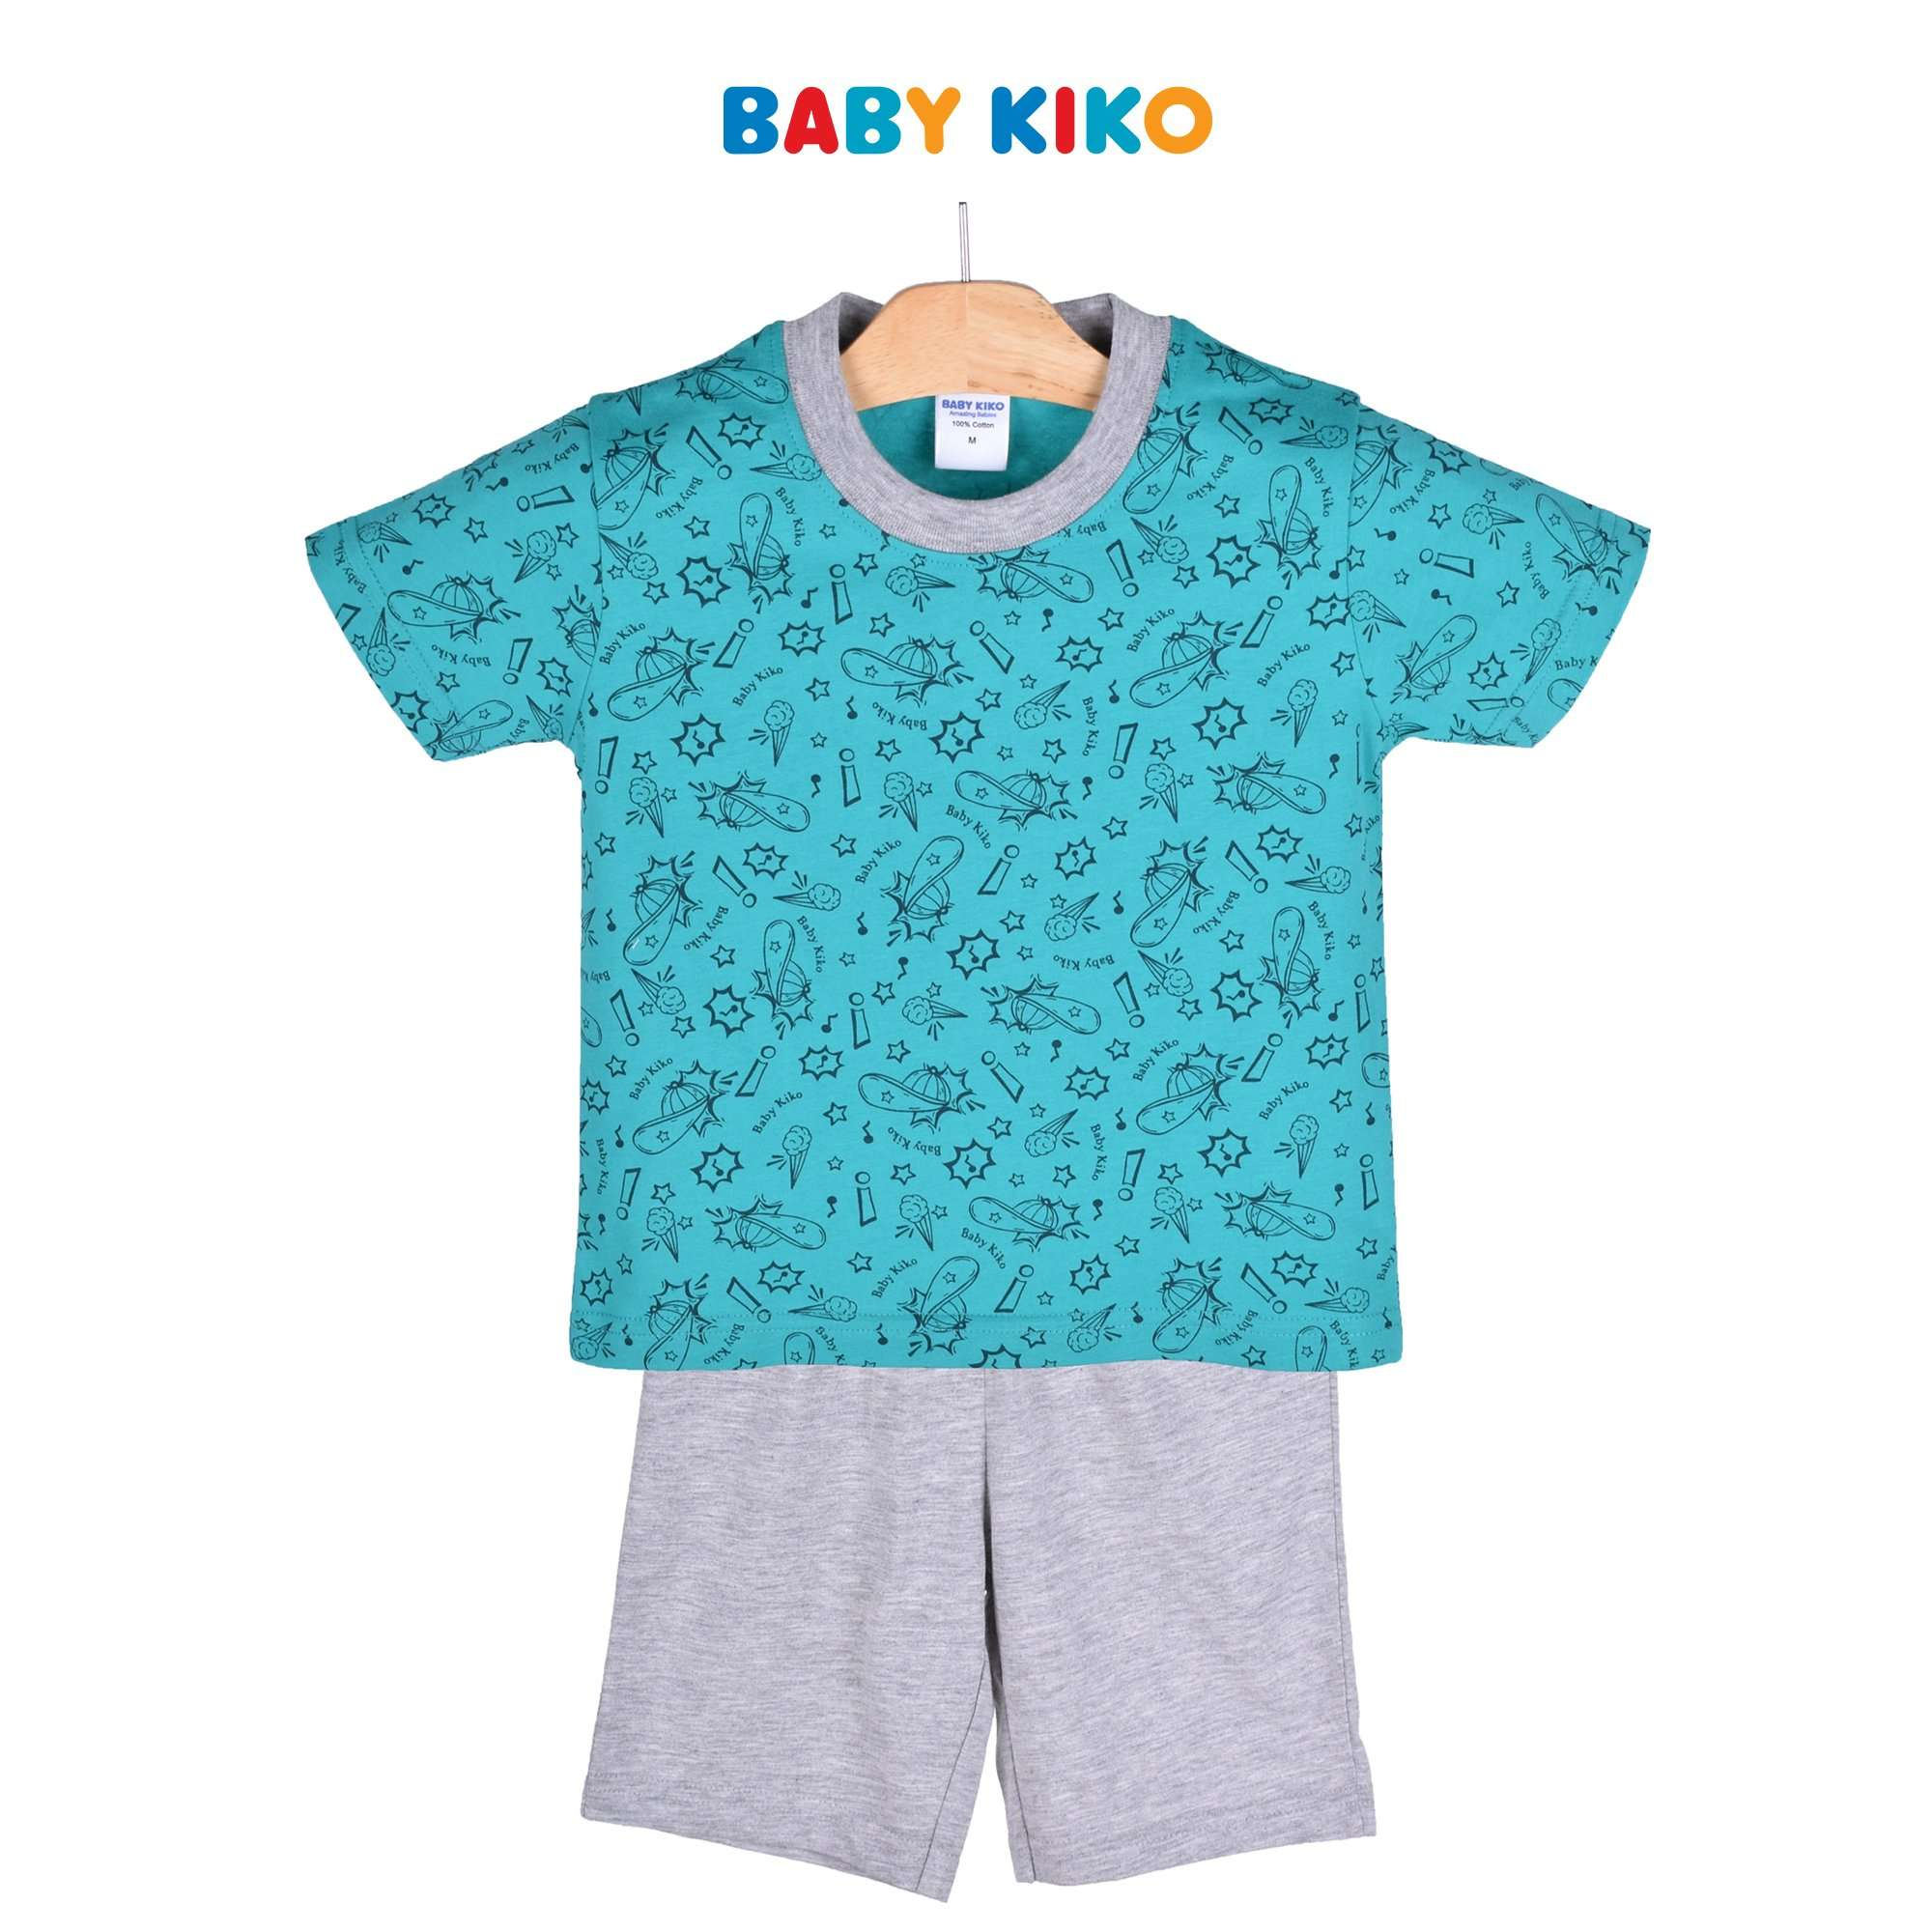 Baby KIKO Toddler Boy Short Sleeve Tee Bermuda Suit 325151-412 : Buy Baby KIKO online at CMG.MY